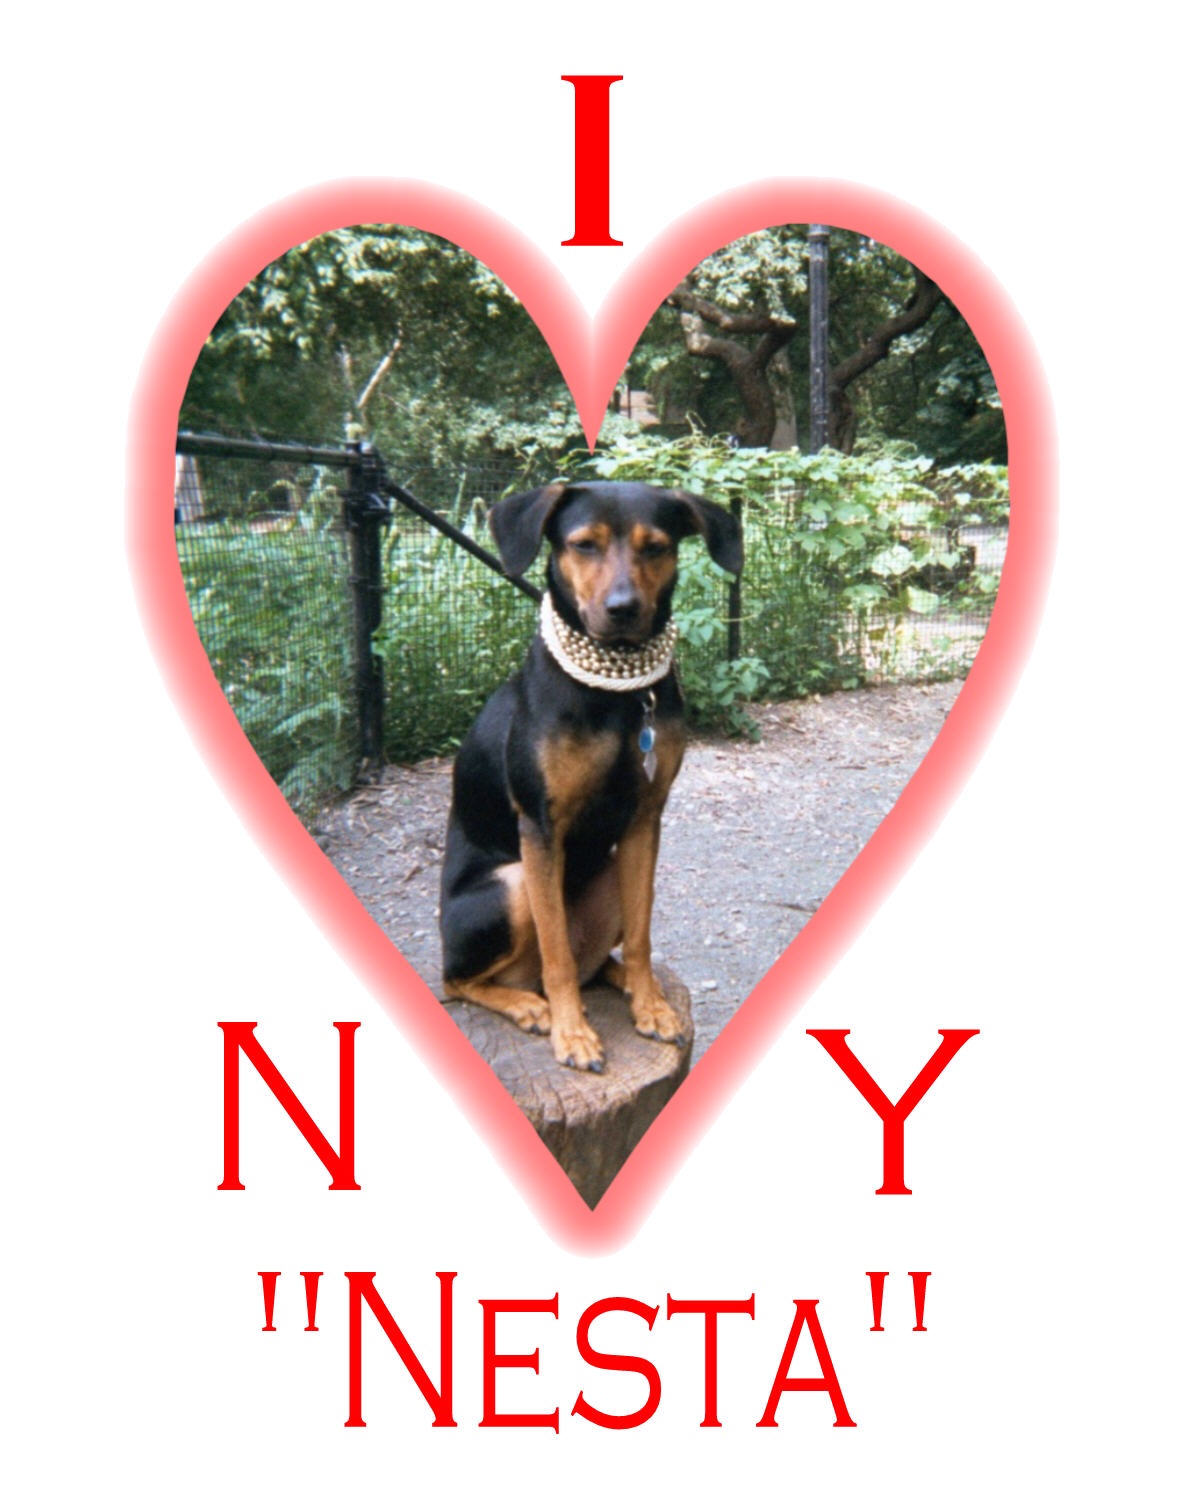 New York Nesta Loves You Too!